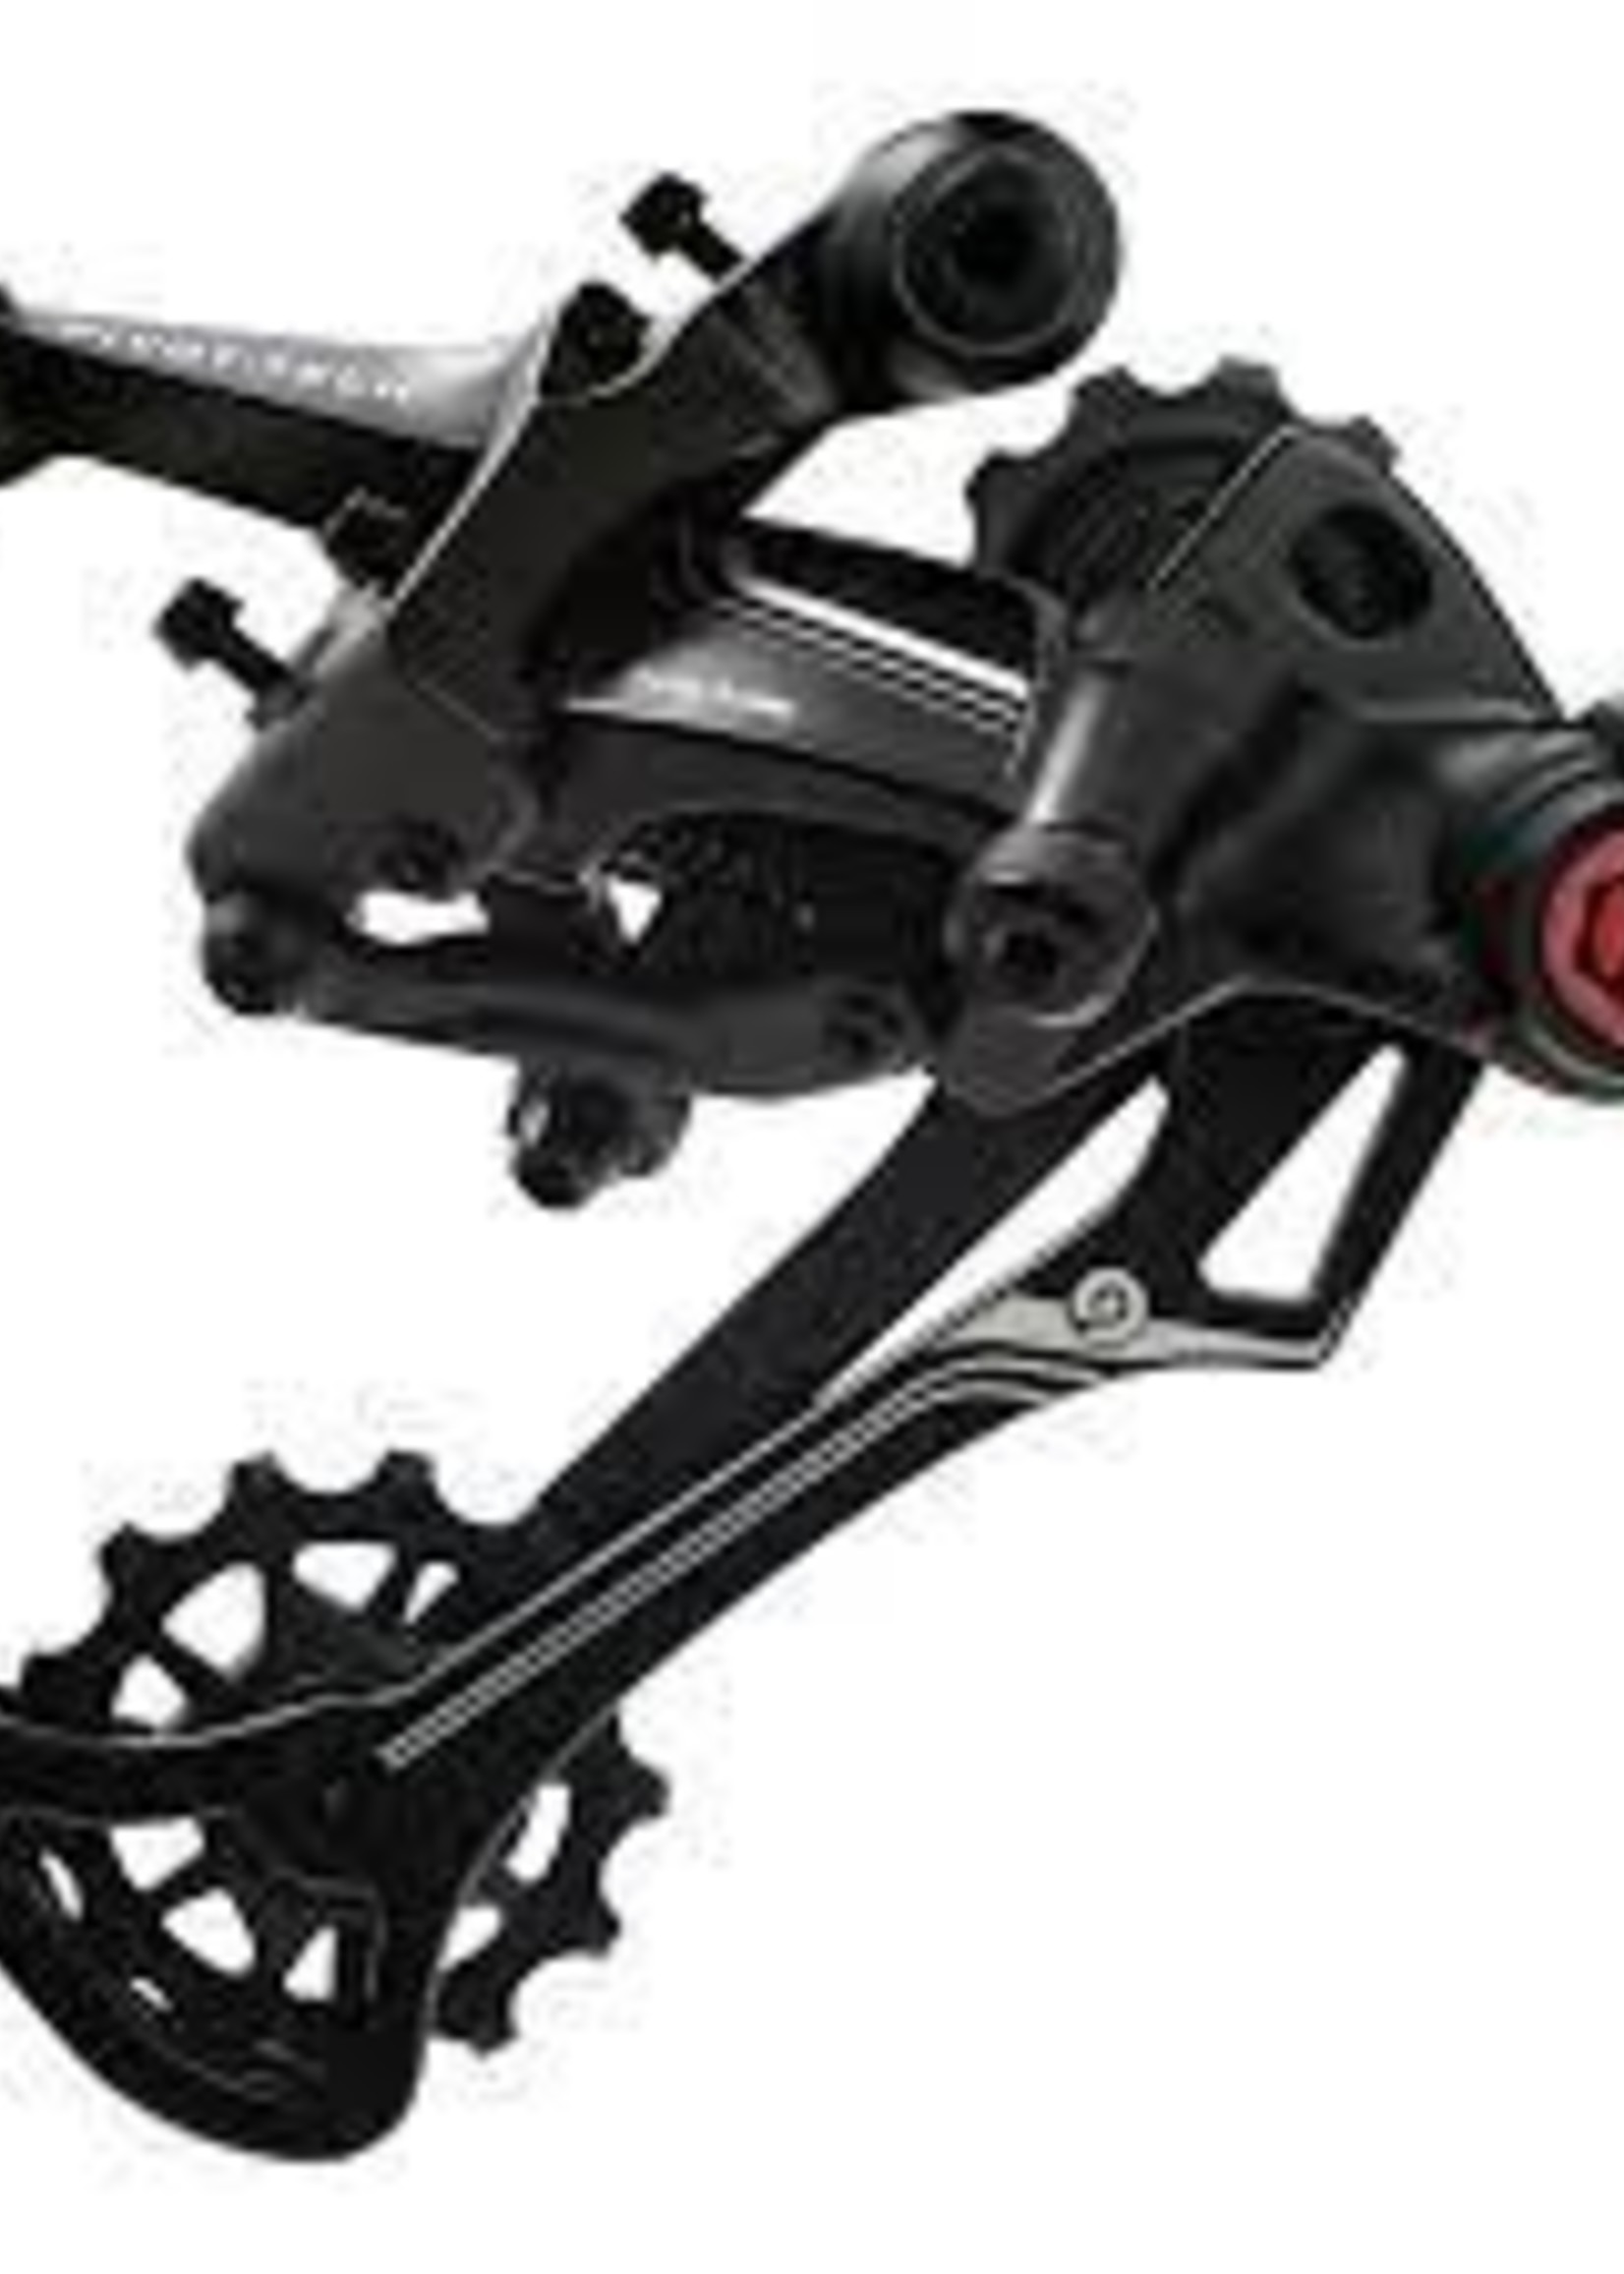 Box Components Box Two Prime9 Rear Derailleur, 9 Speed, X-Wide Cage (For 11-50T Cassette), Black